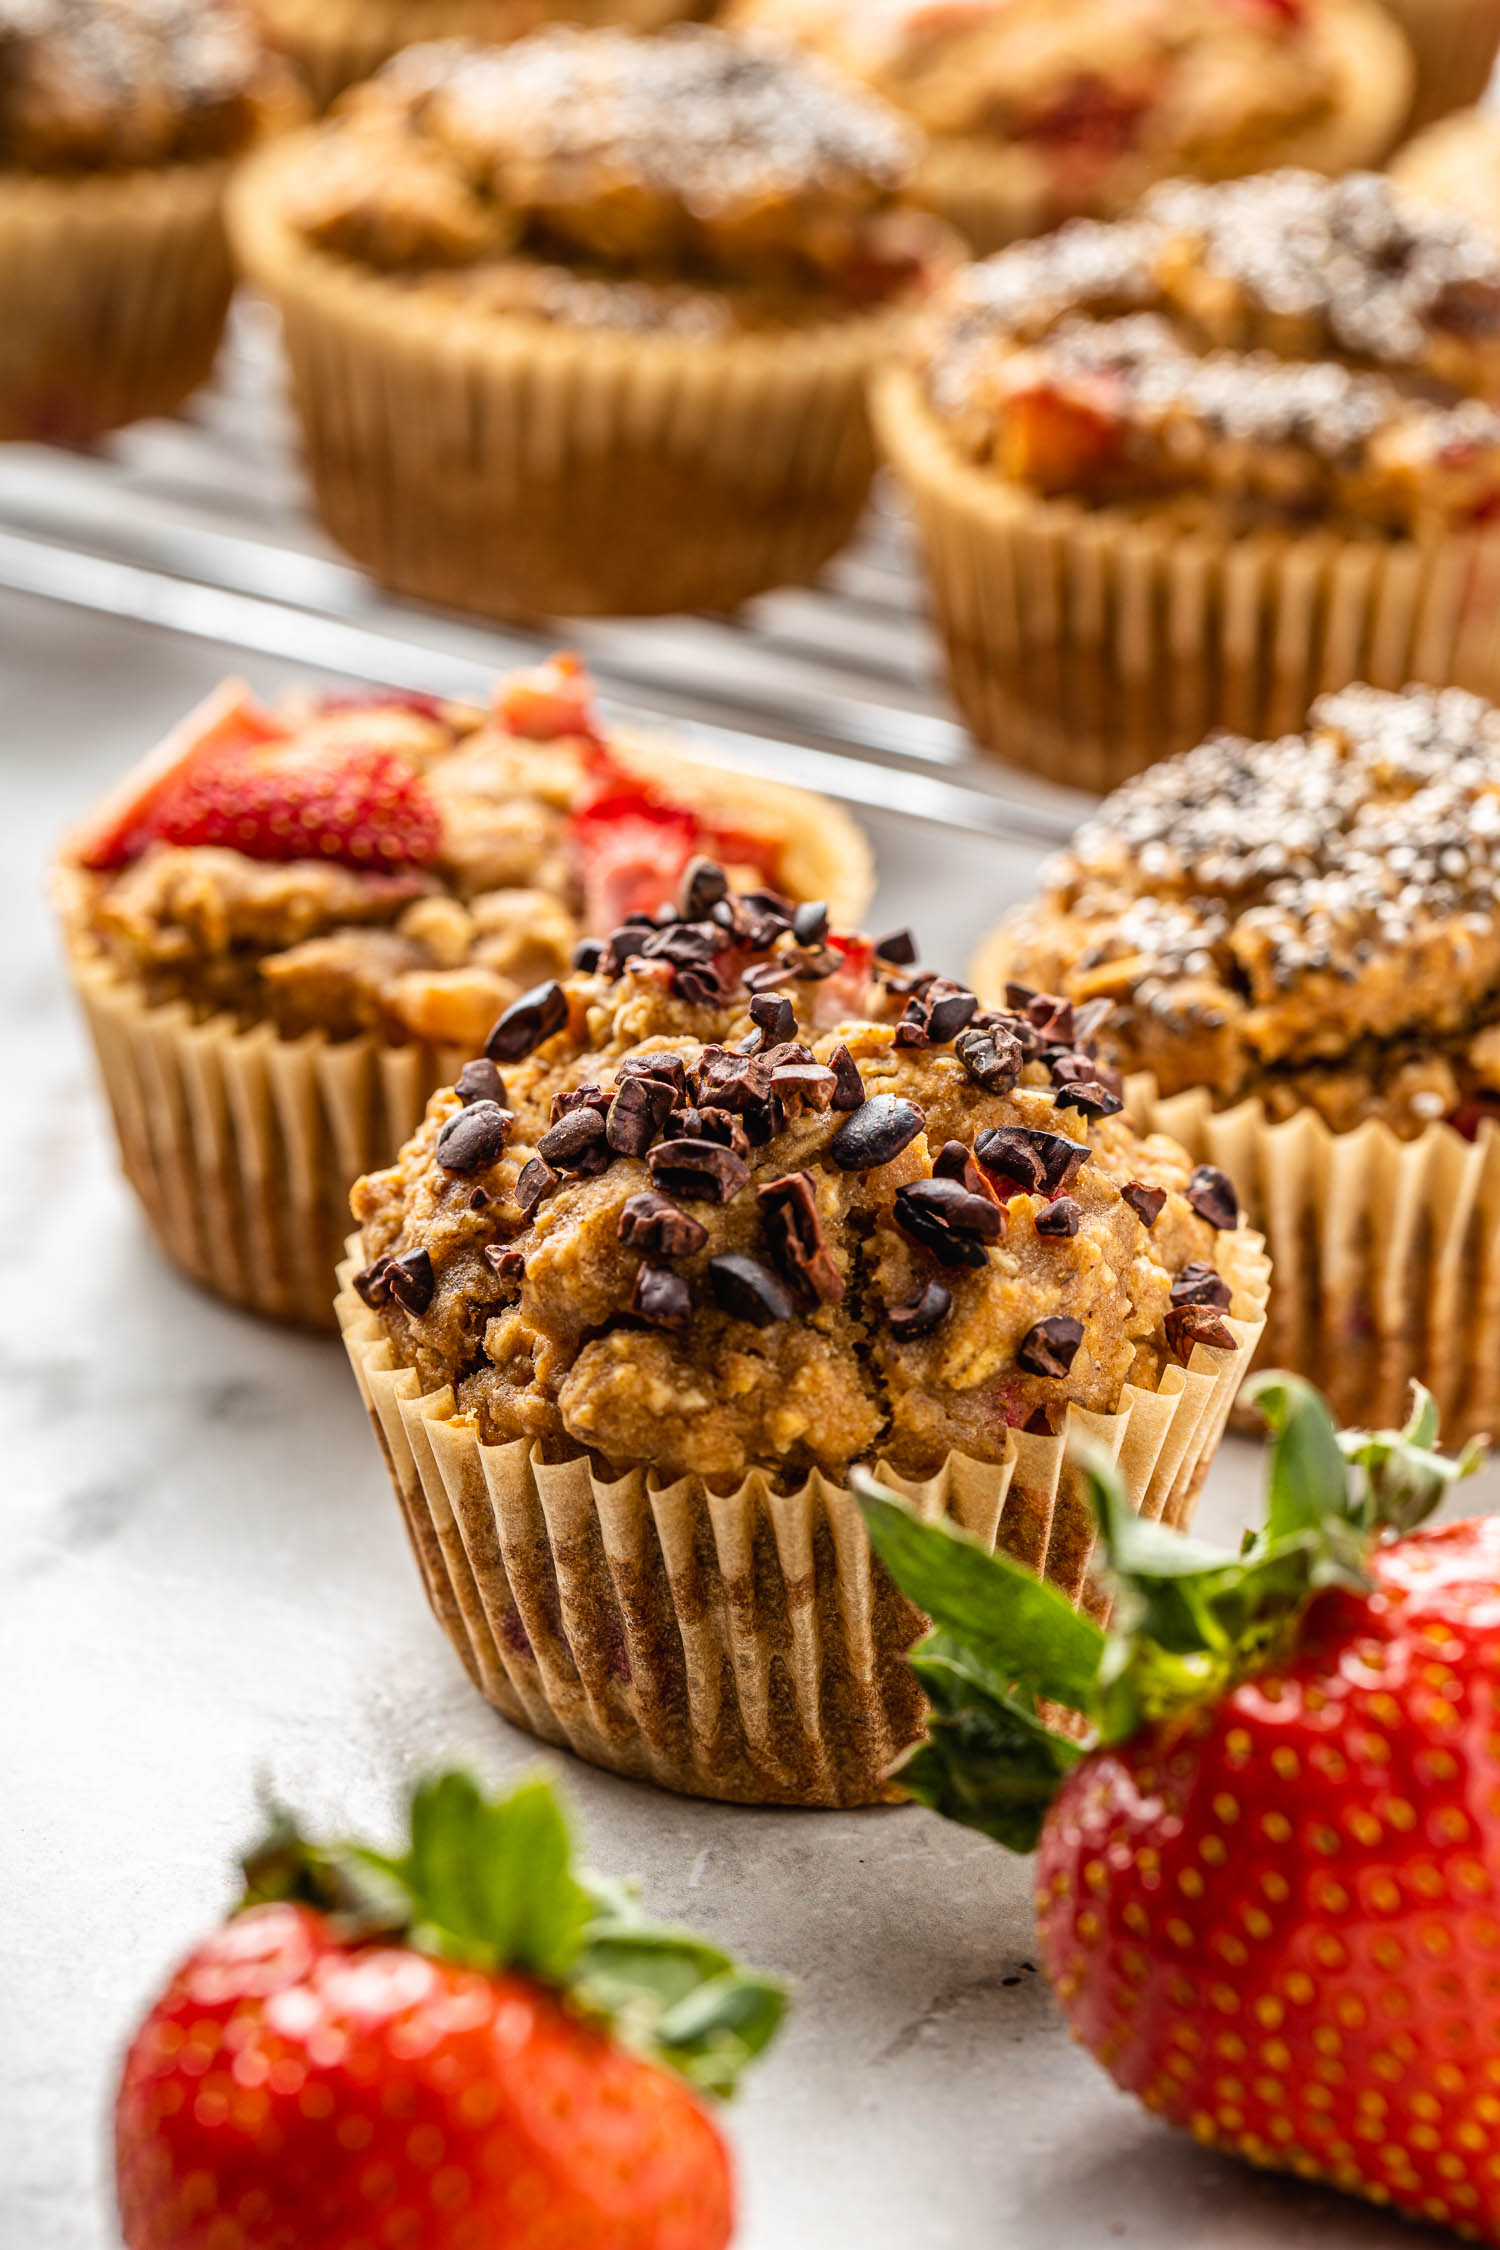 cacao topped vegan, gluten free muffin takes center stage among strawberries and other muffins